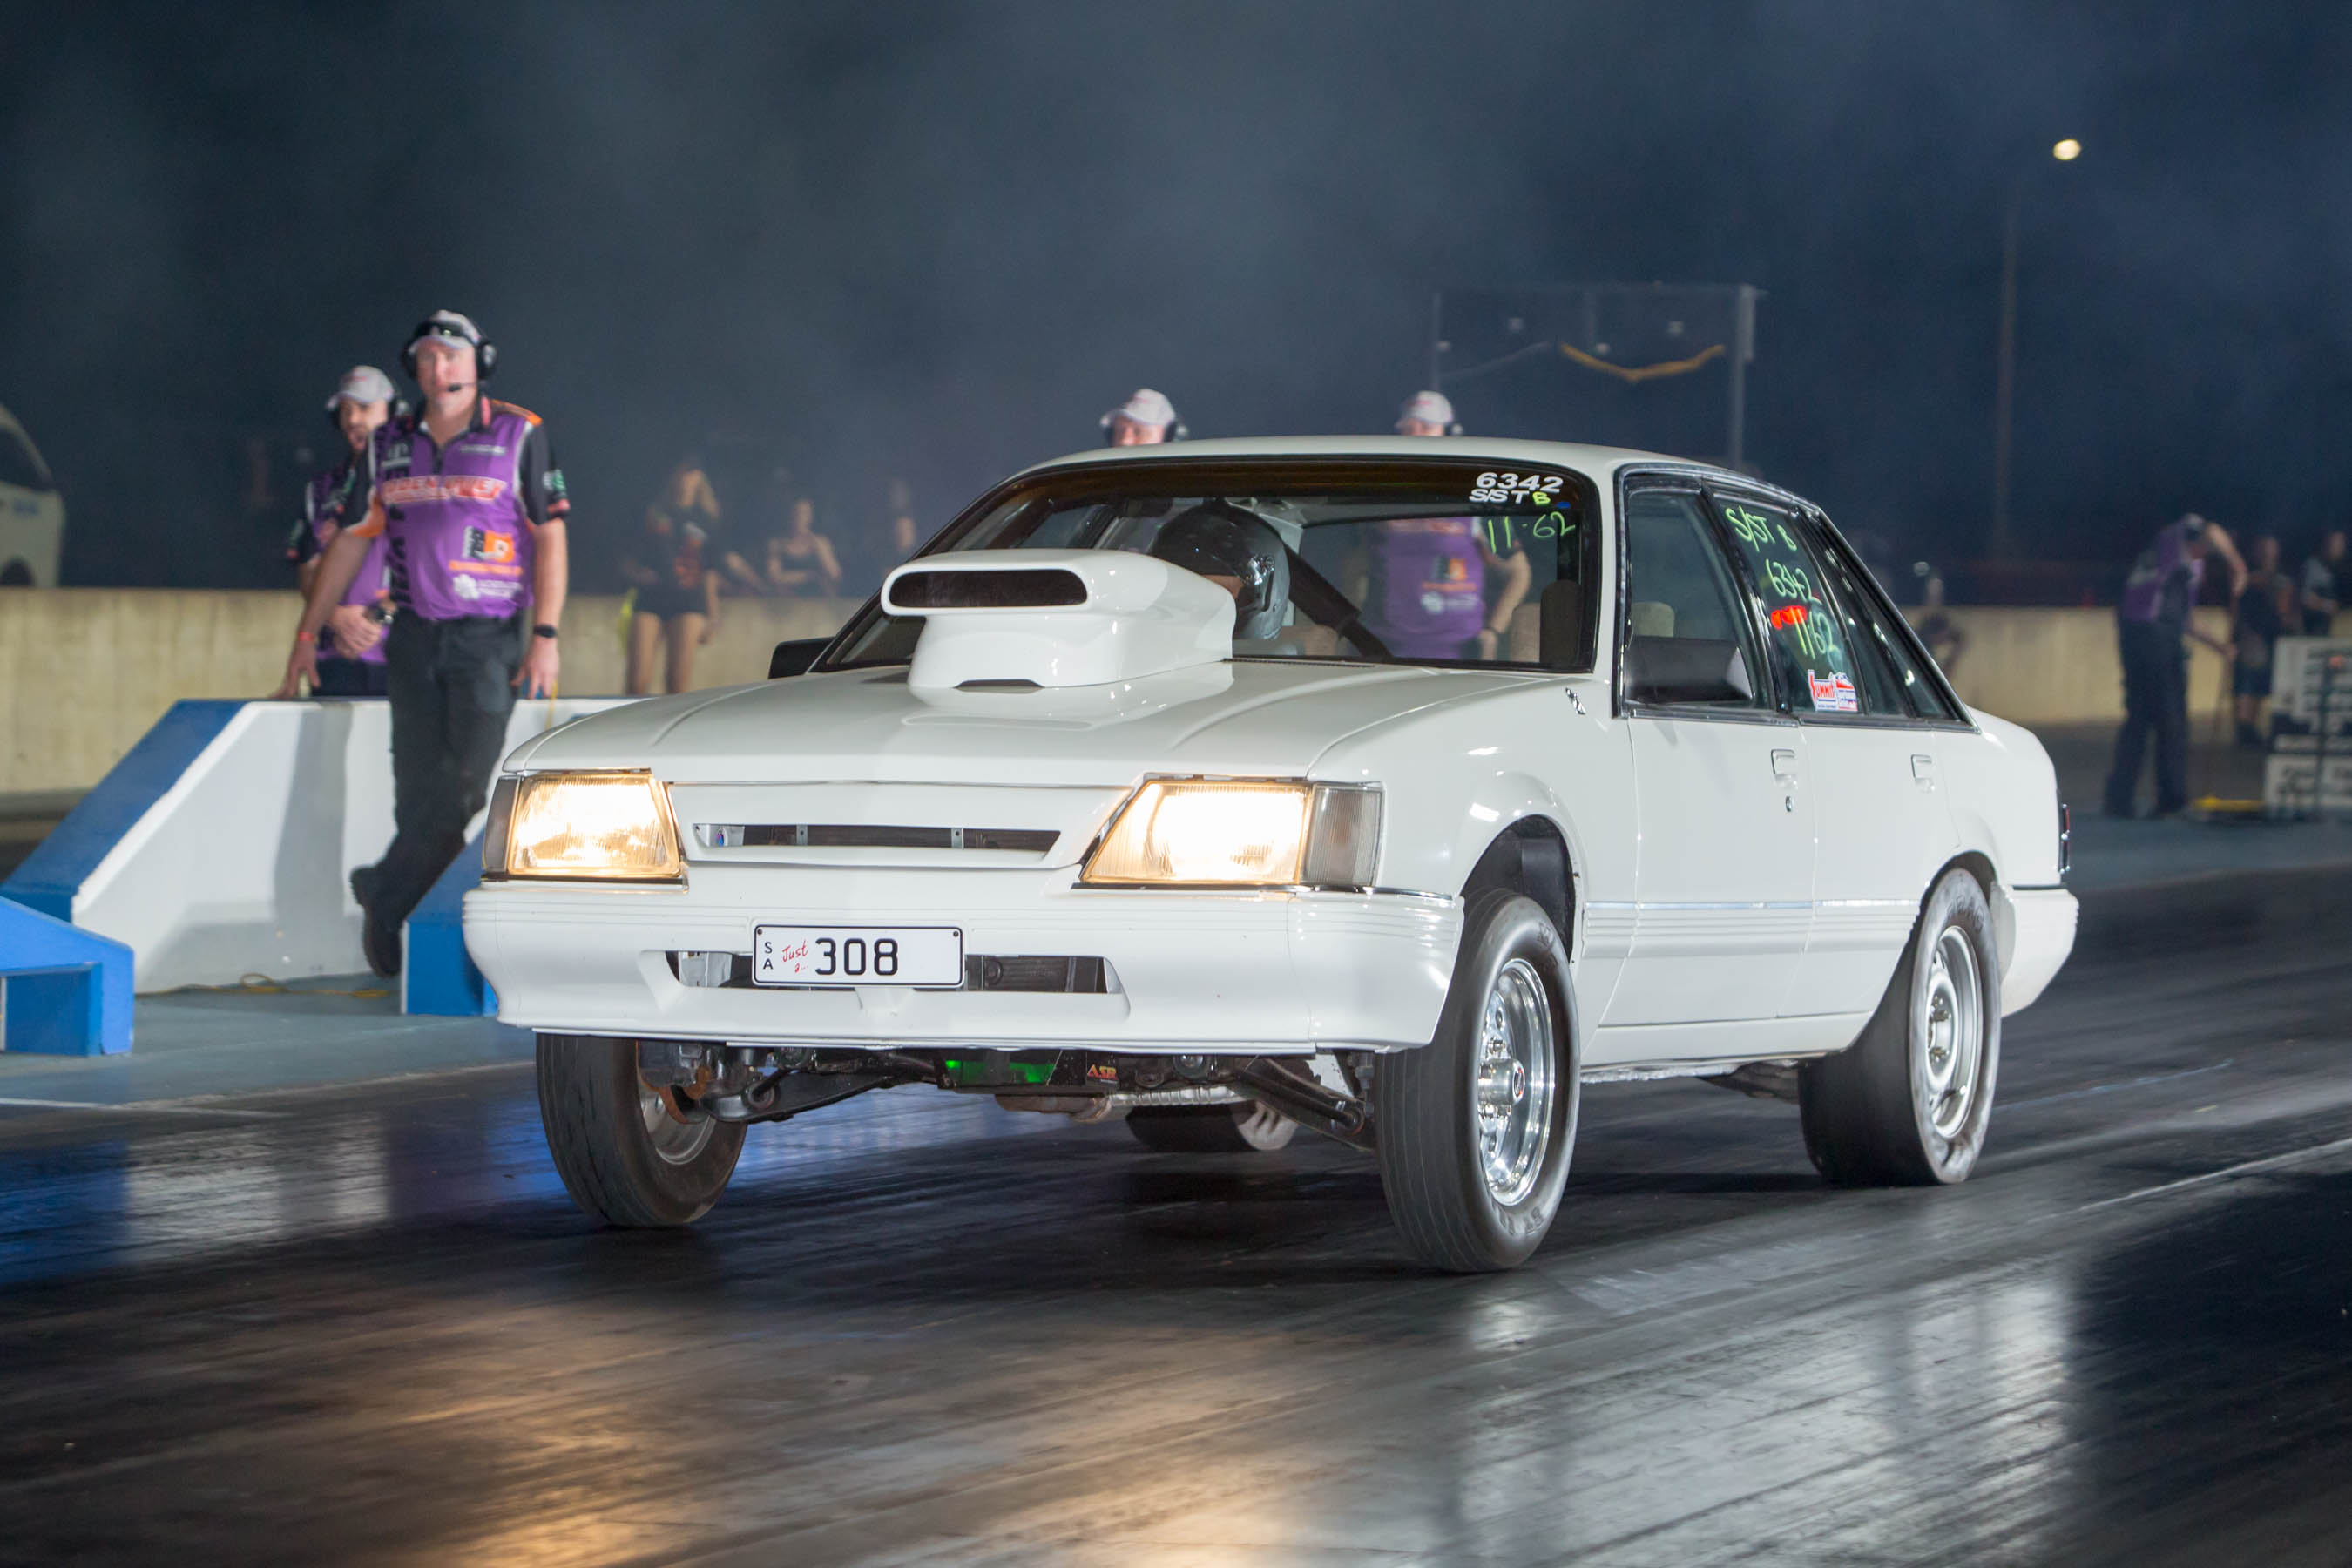 Super Street set to sizzle at Andra Grand Final